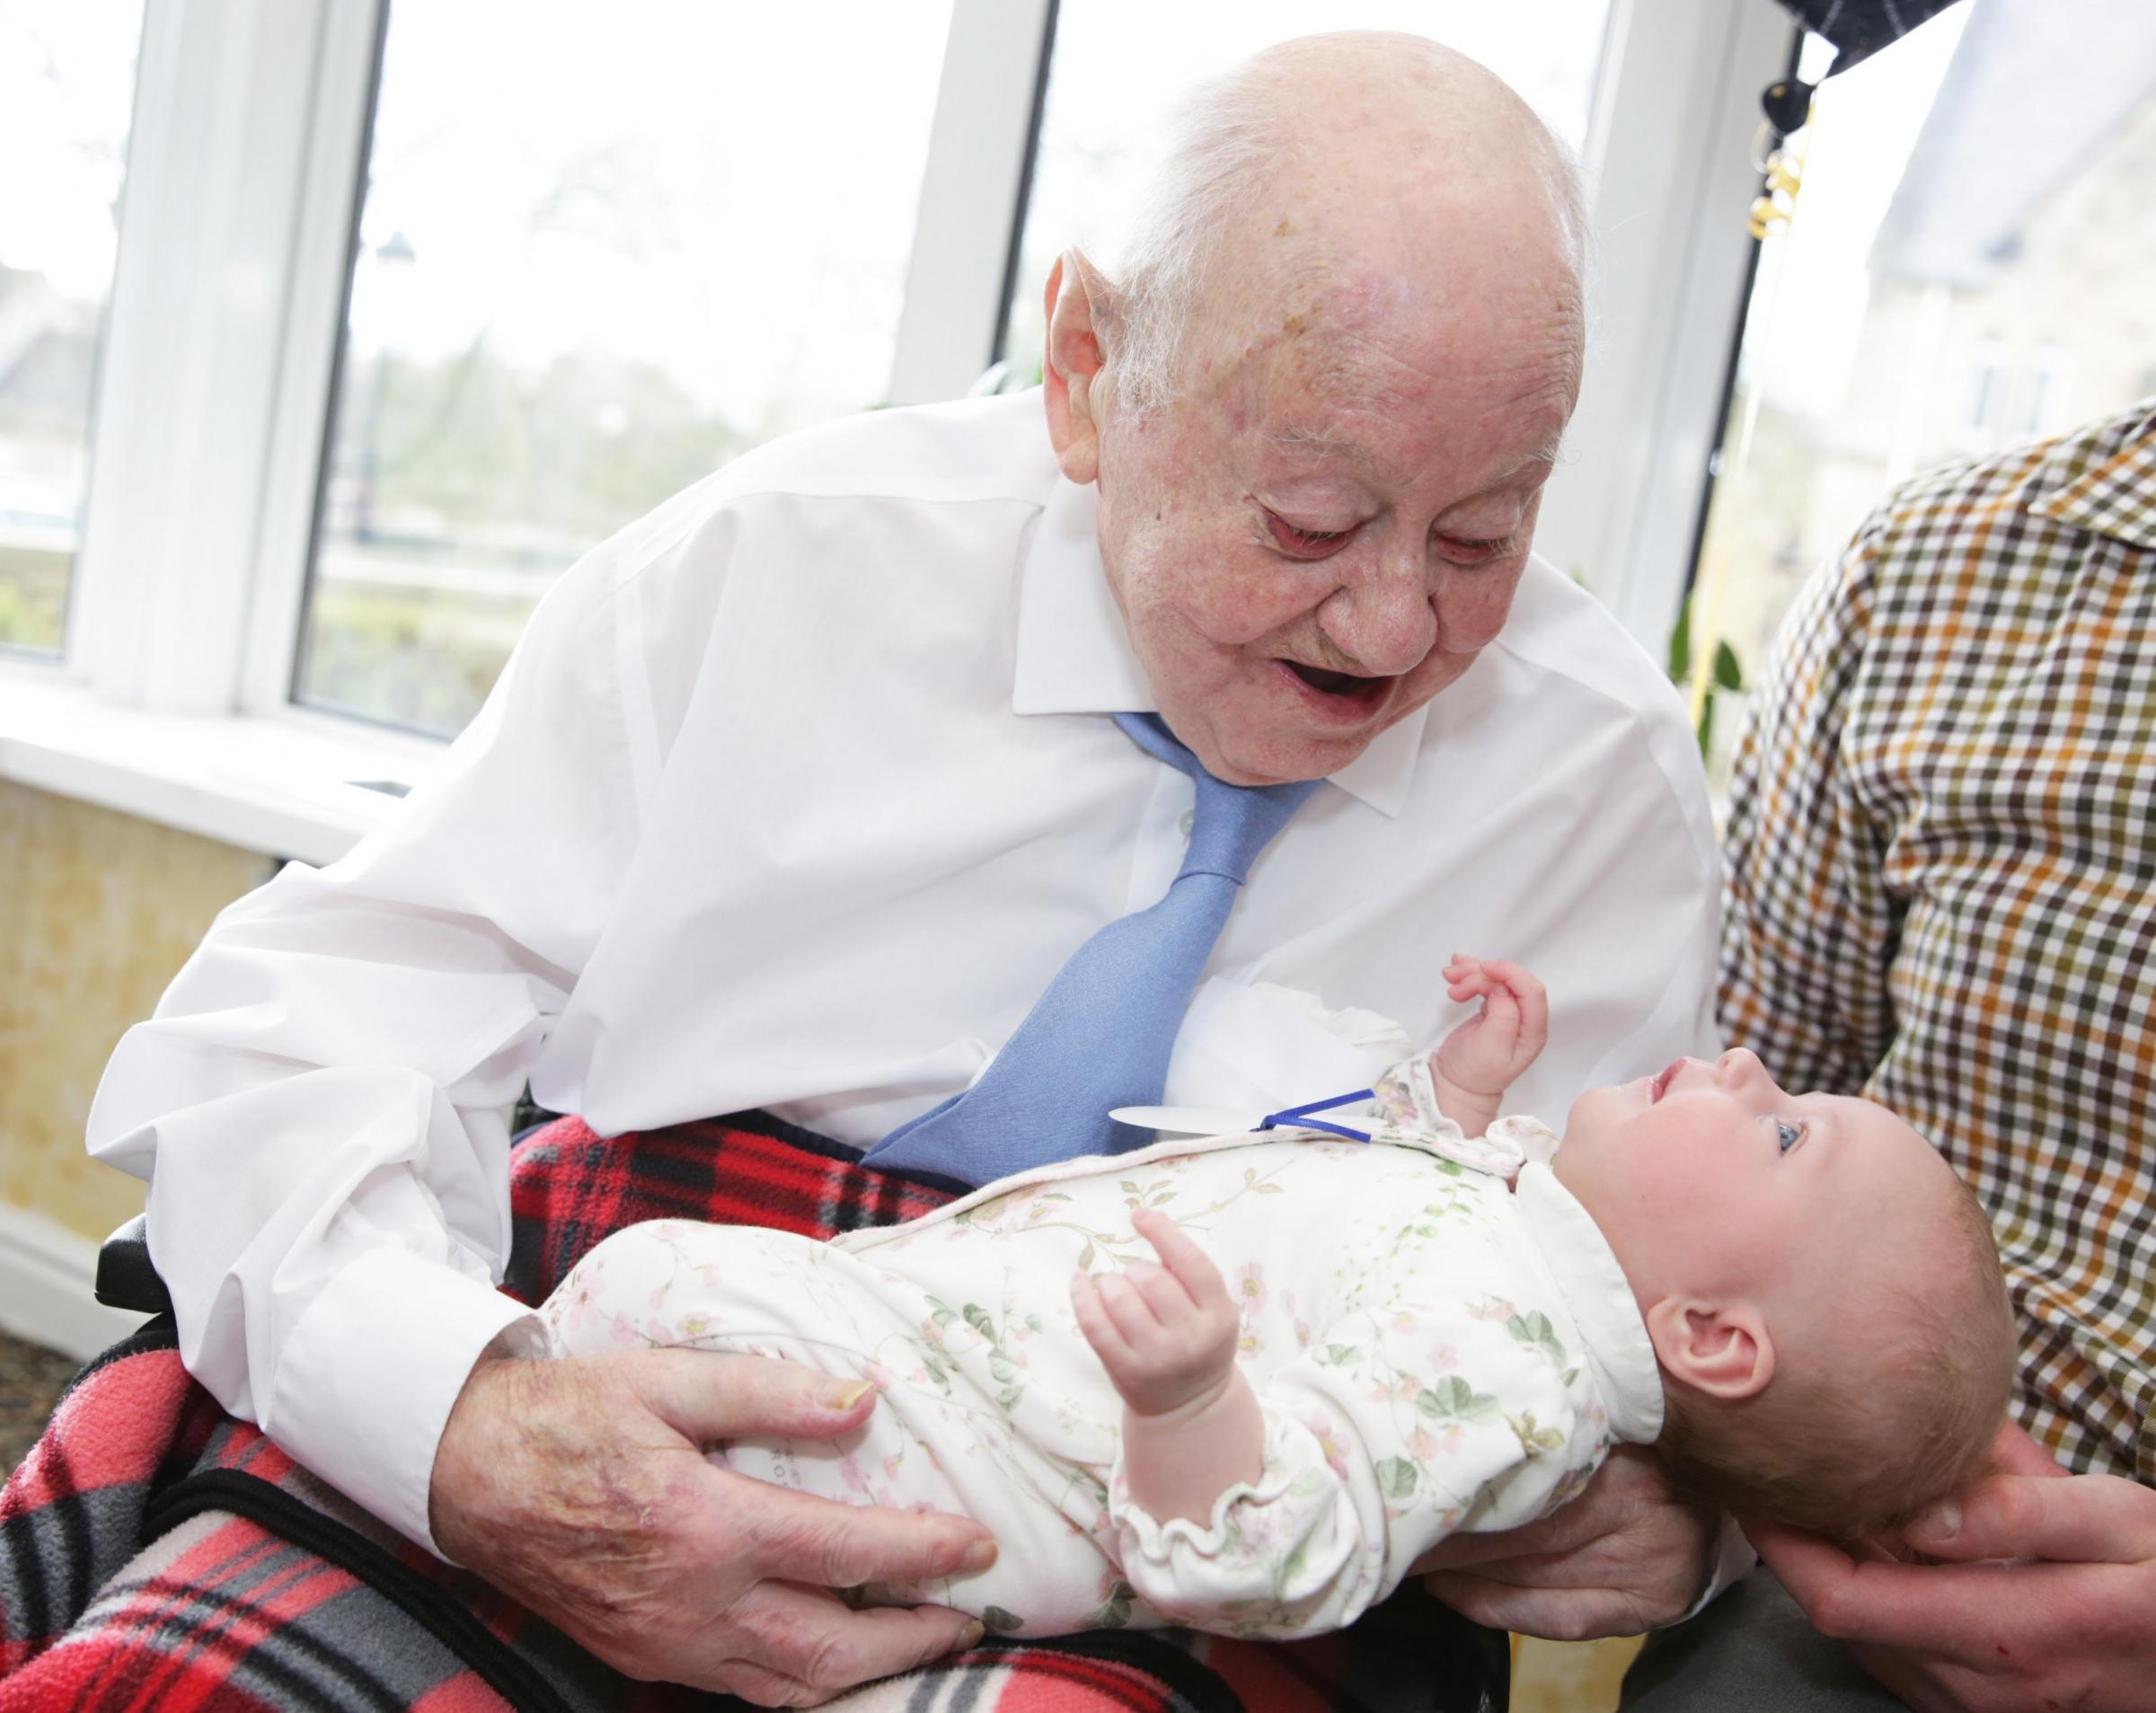 CELEBRATIONS: Alfred Moody, who used to run Moody's in Durham, is celebrating his 100th birthday at Sherburn House care home he is pictured with hiss great granddaughter Harriot Chrystal 8 weeks Picture: SARAH CALDECOTT